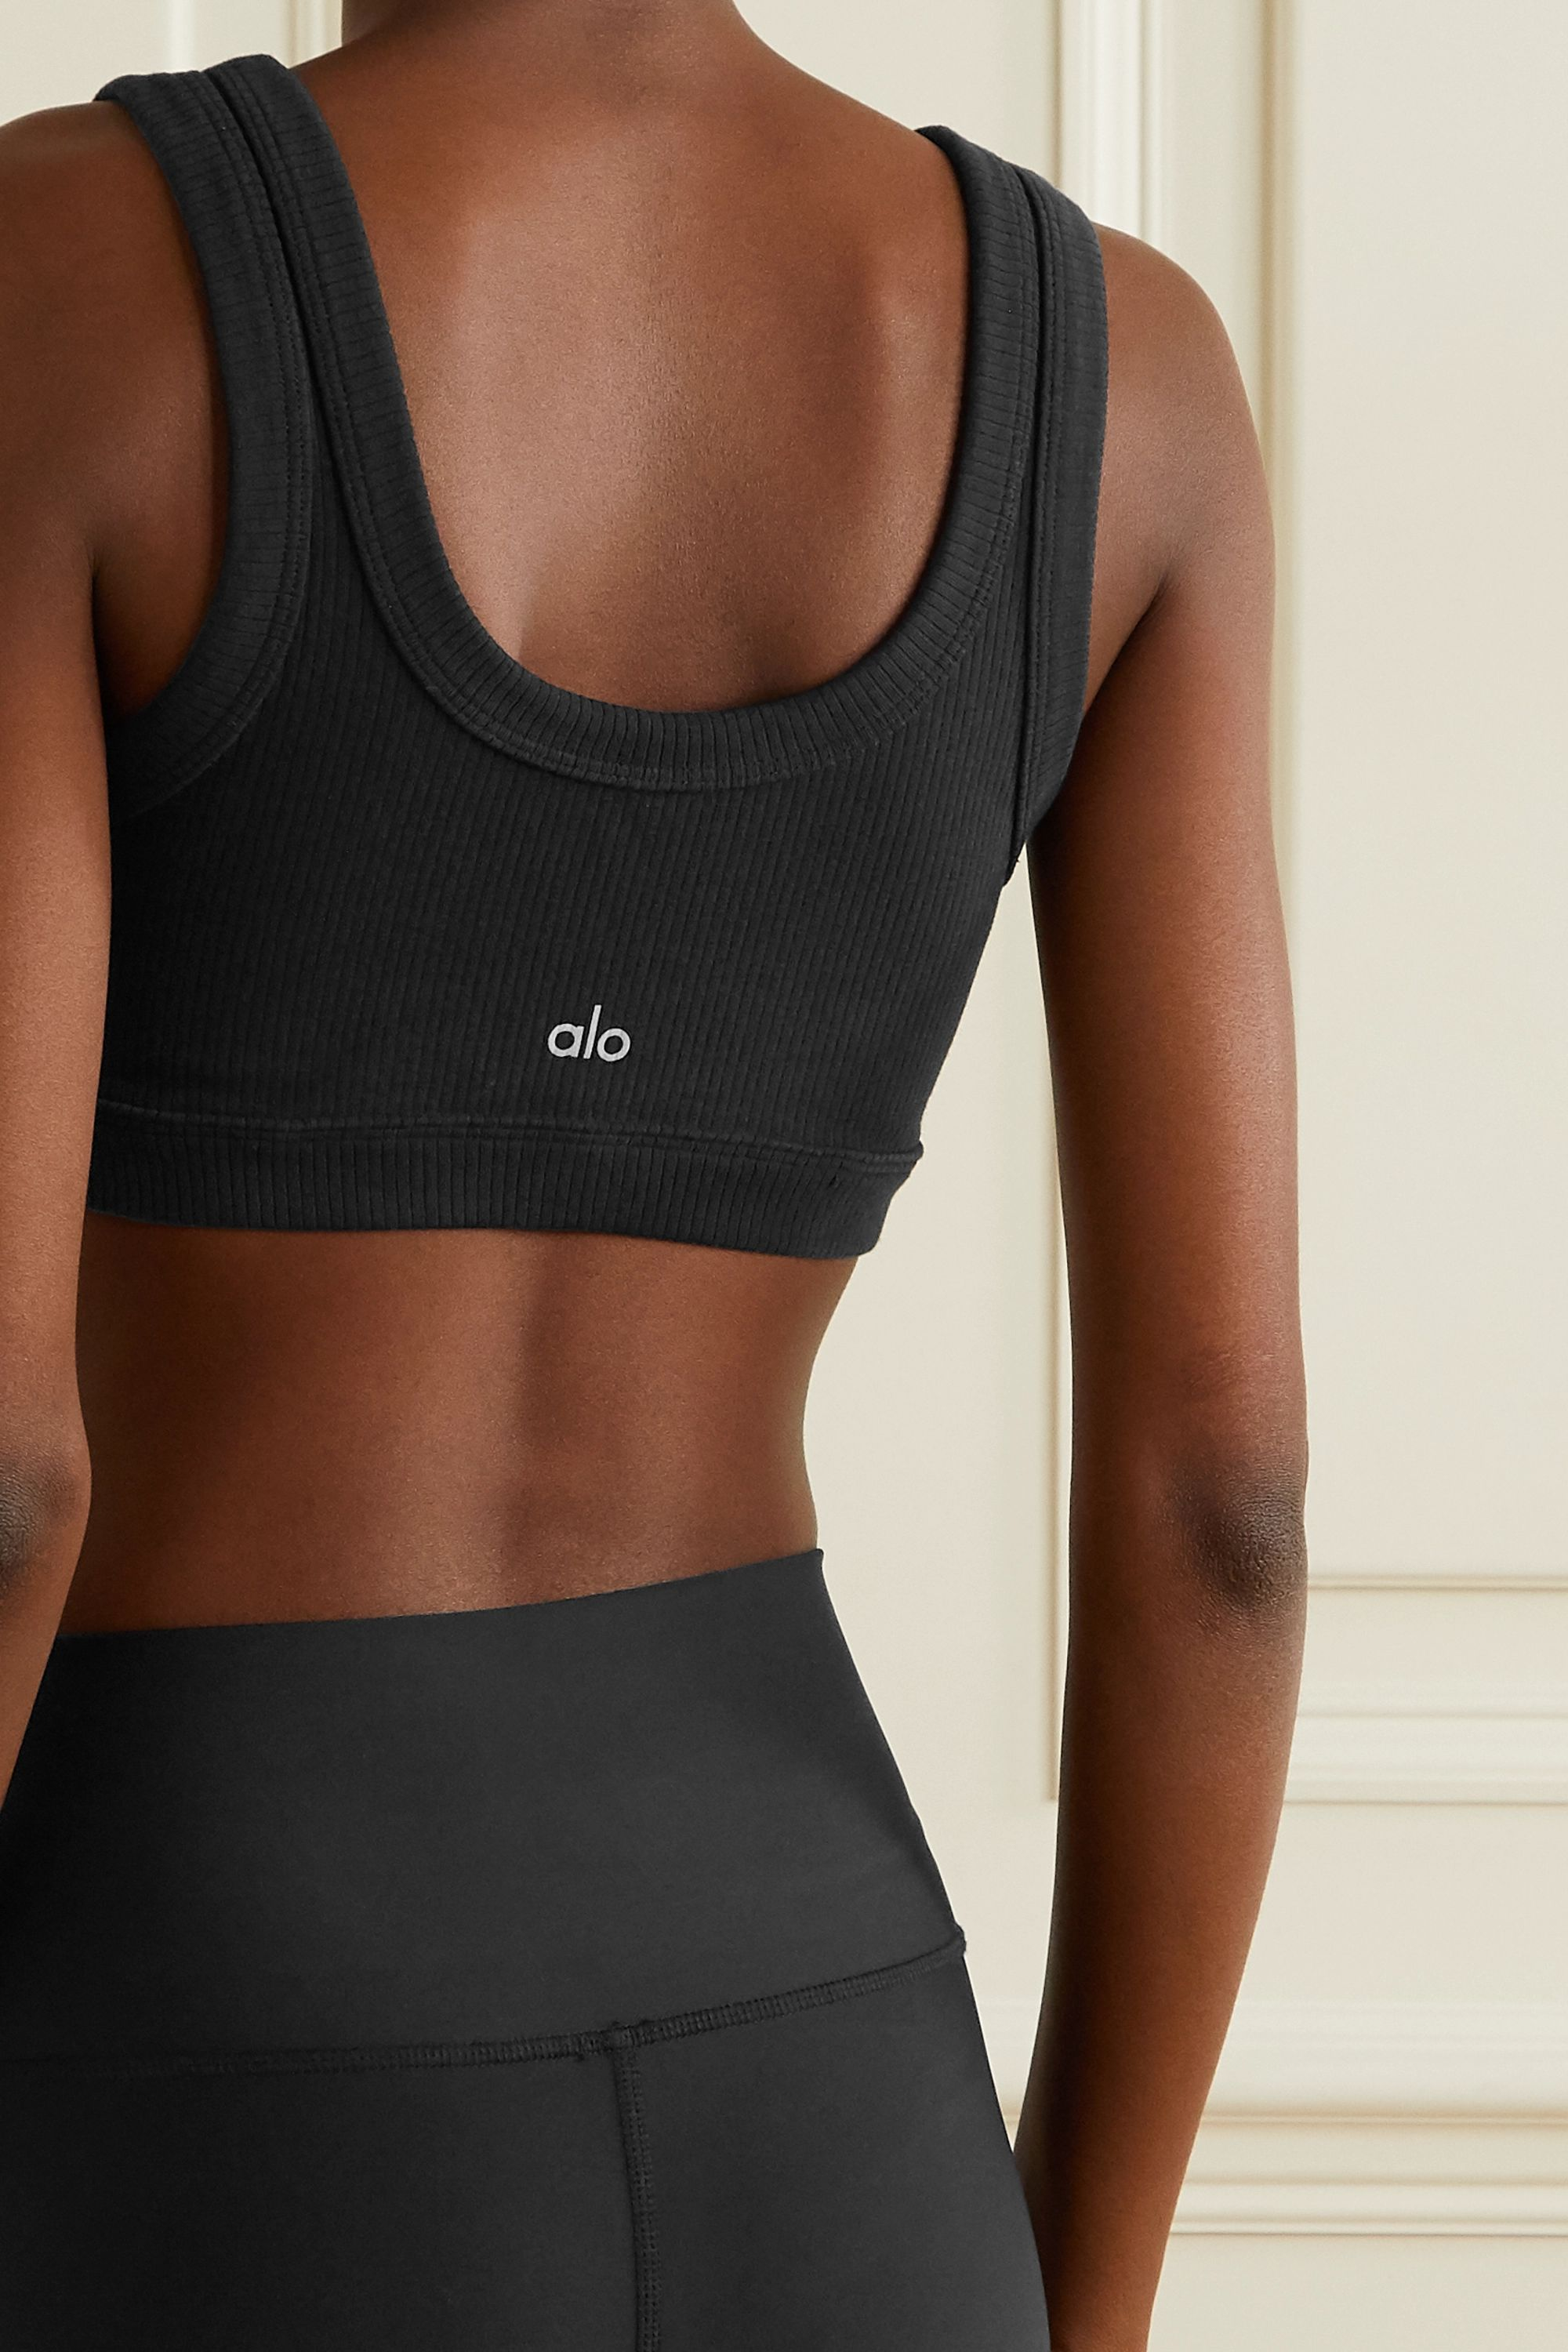 Alo Yoga Wellness ribbed stretch sports bra